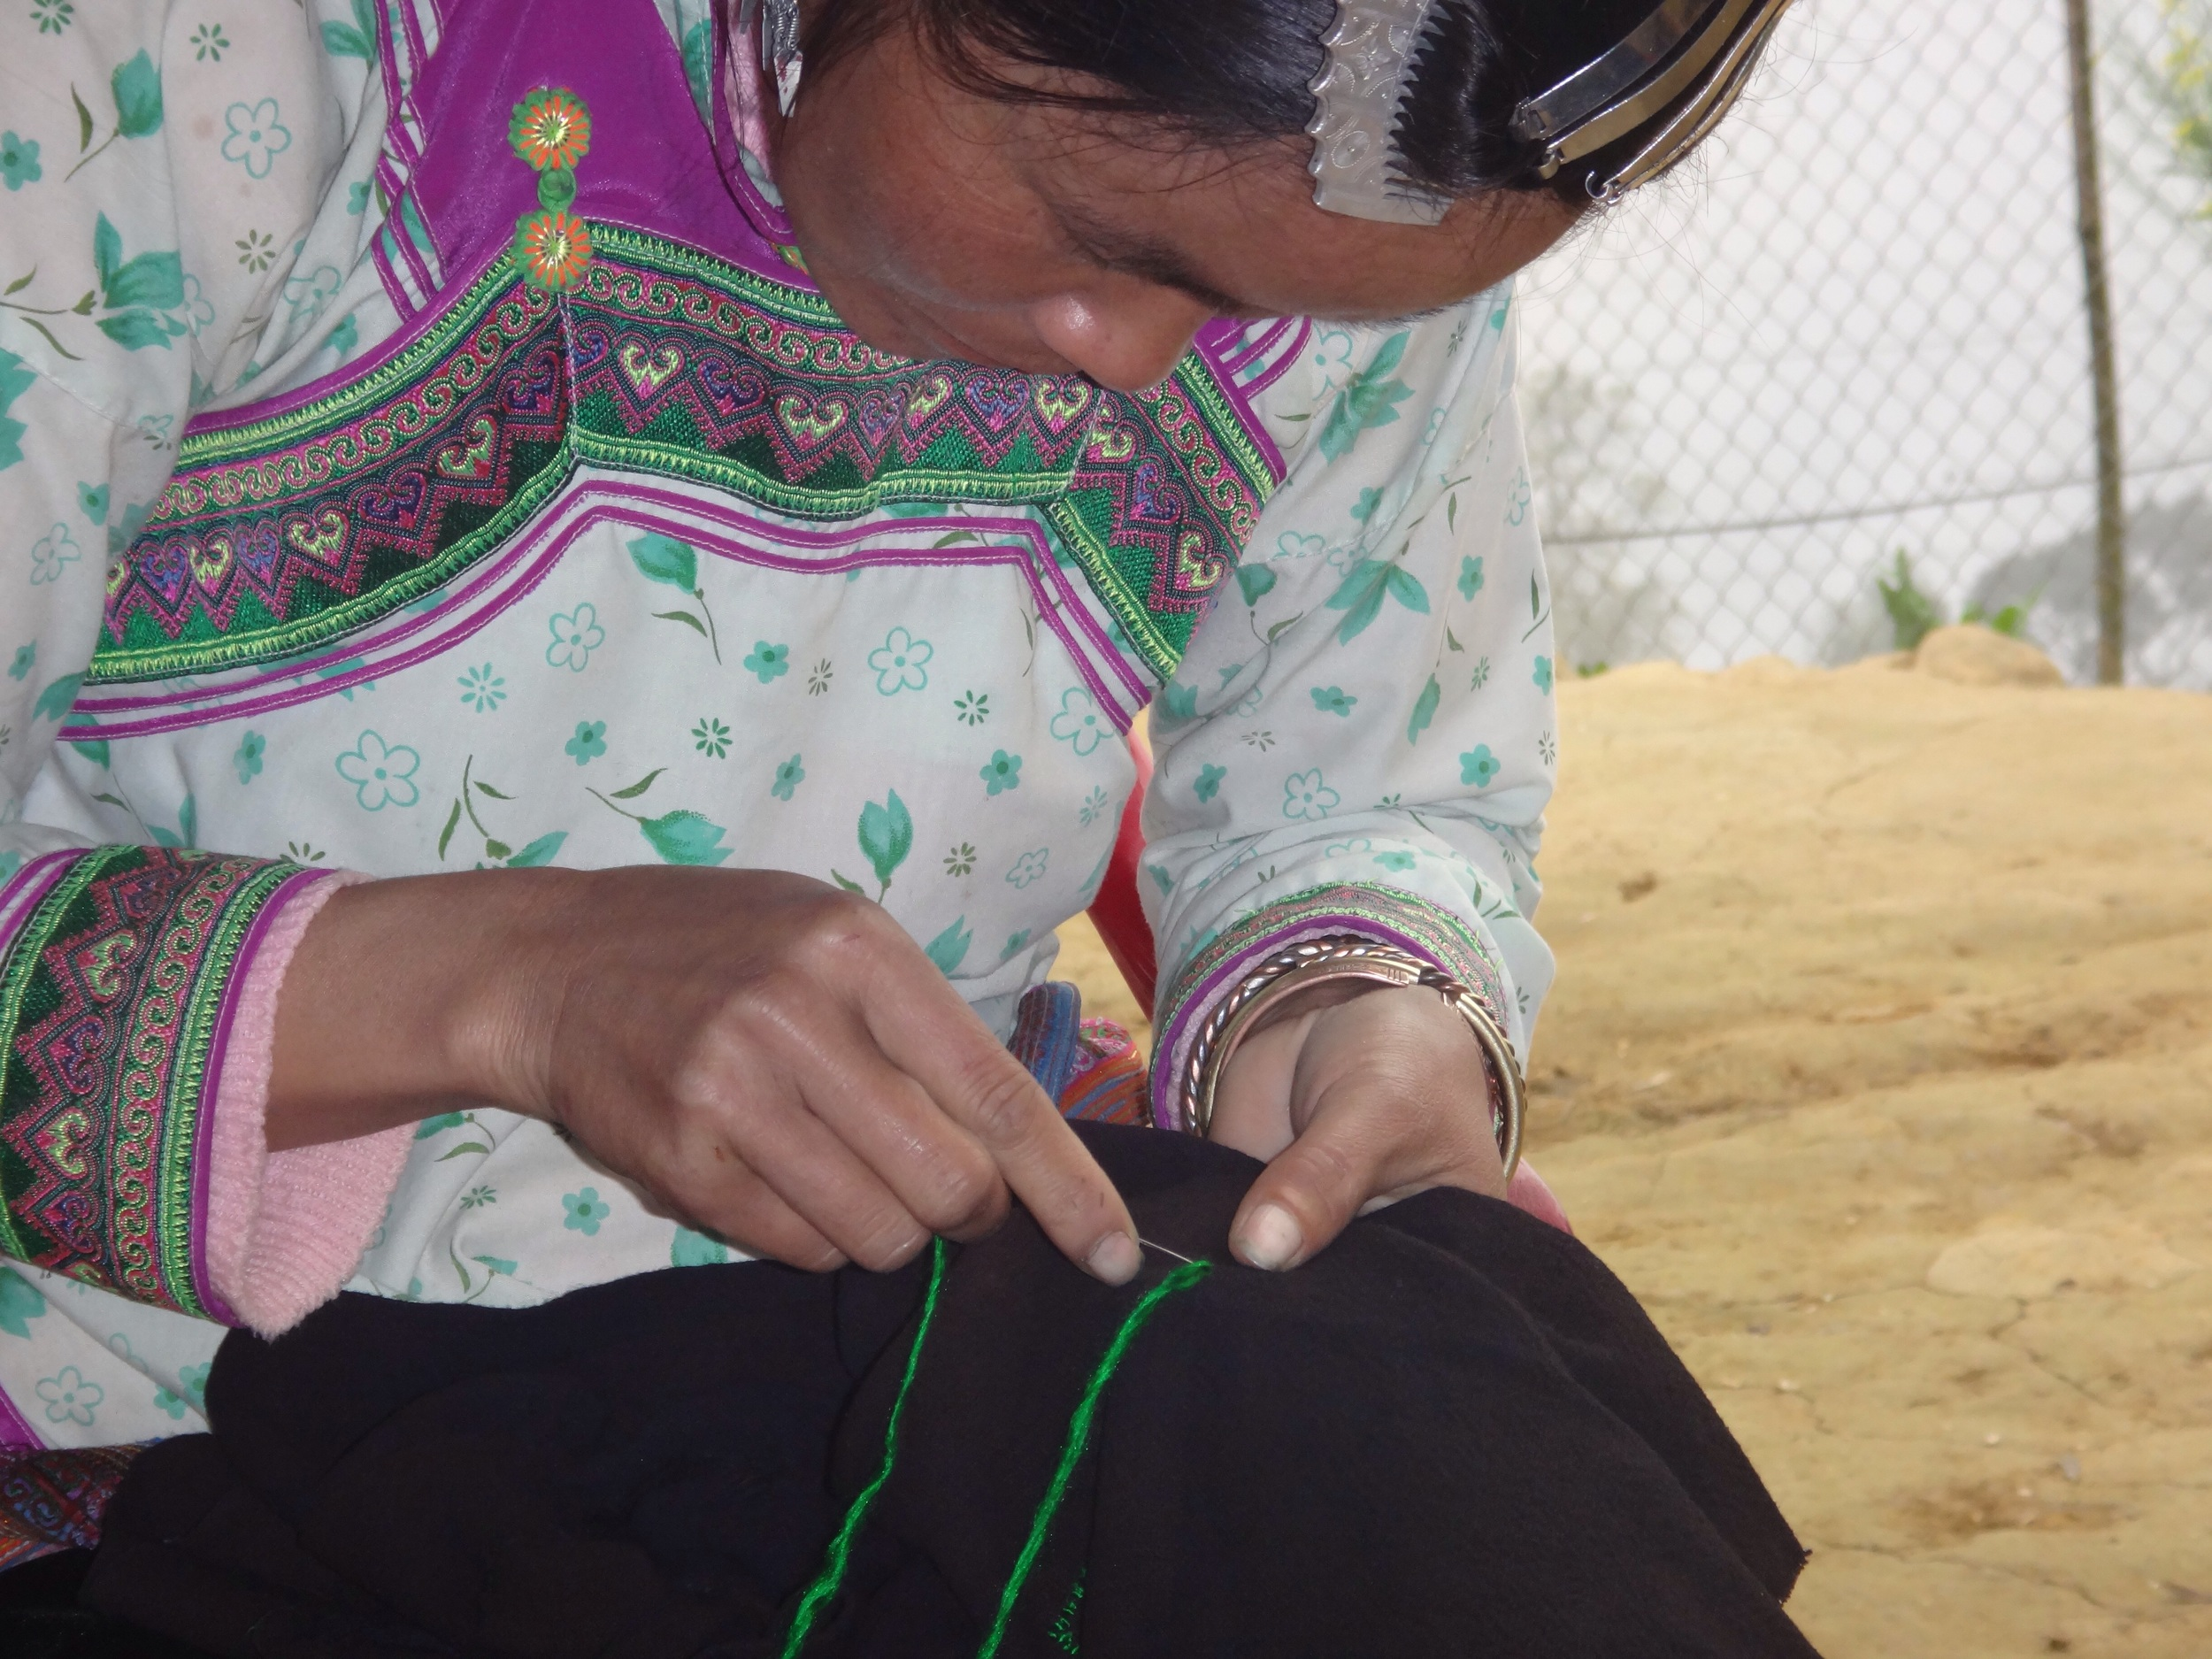 Ker, doing traditional Hmong embroidery for a belt, would take about 1.5 years to complete.